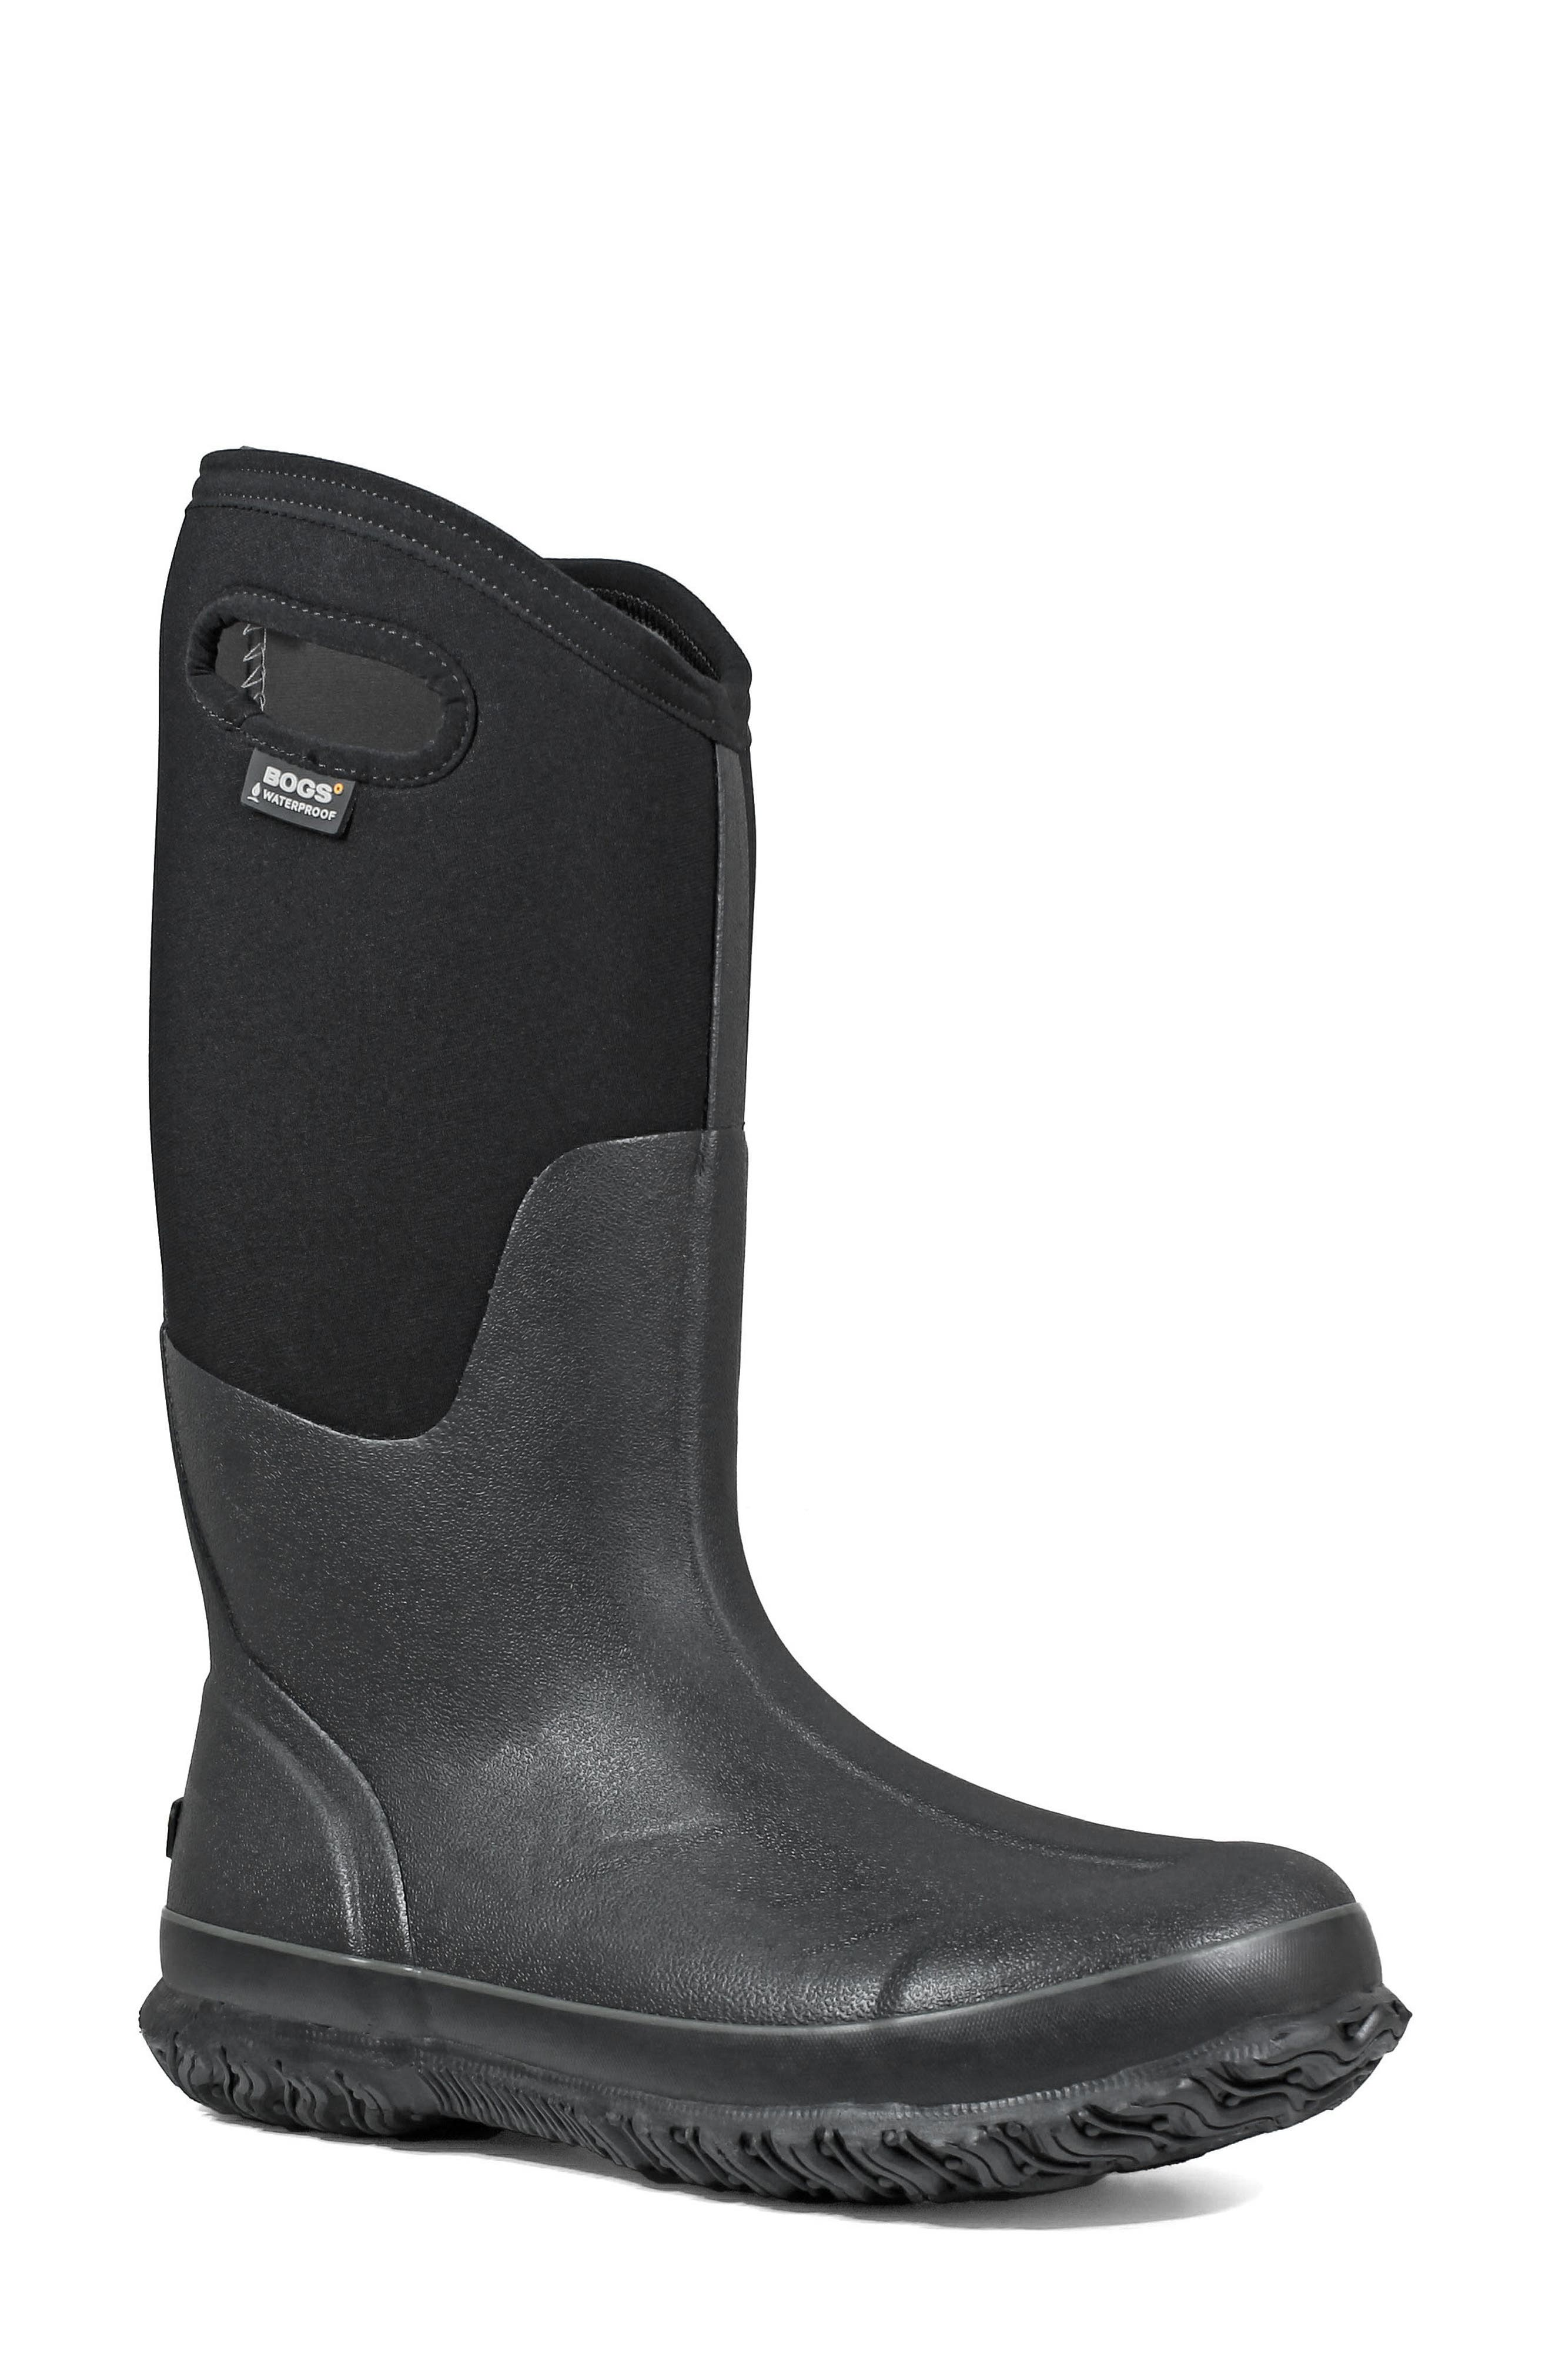 BOGS Classic Tall Waterproof Snow Boot, Main, color, BLACK